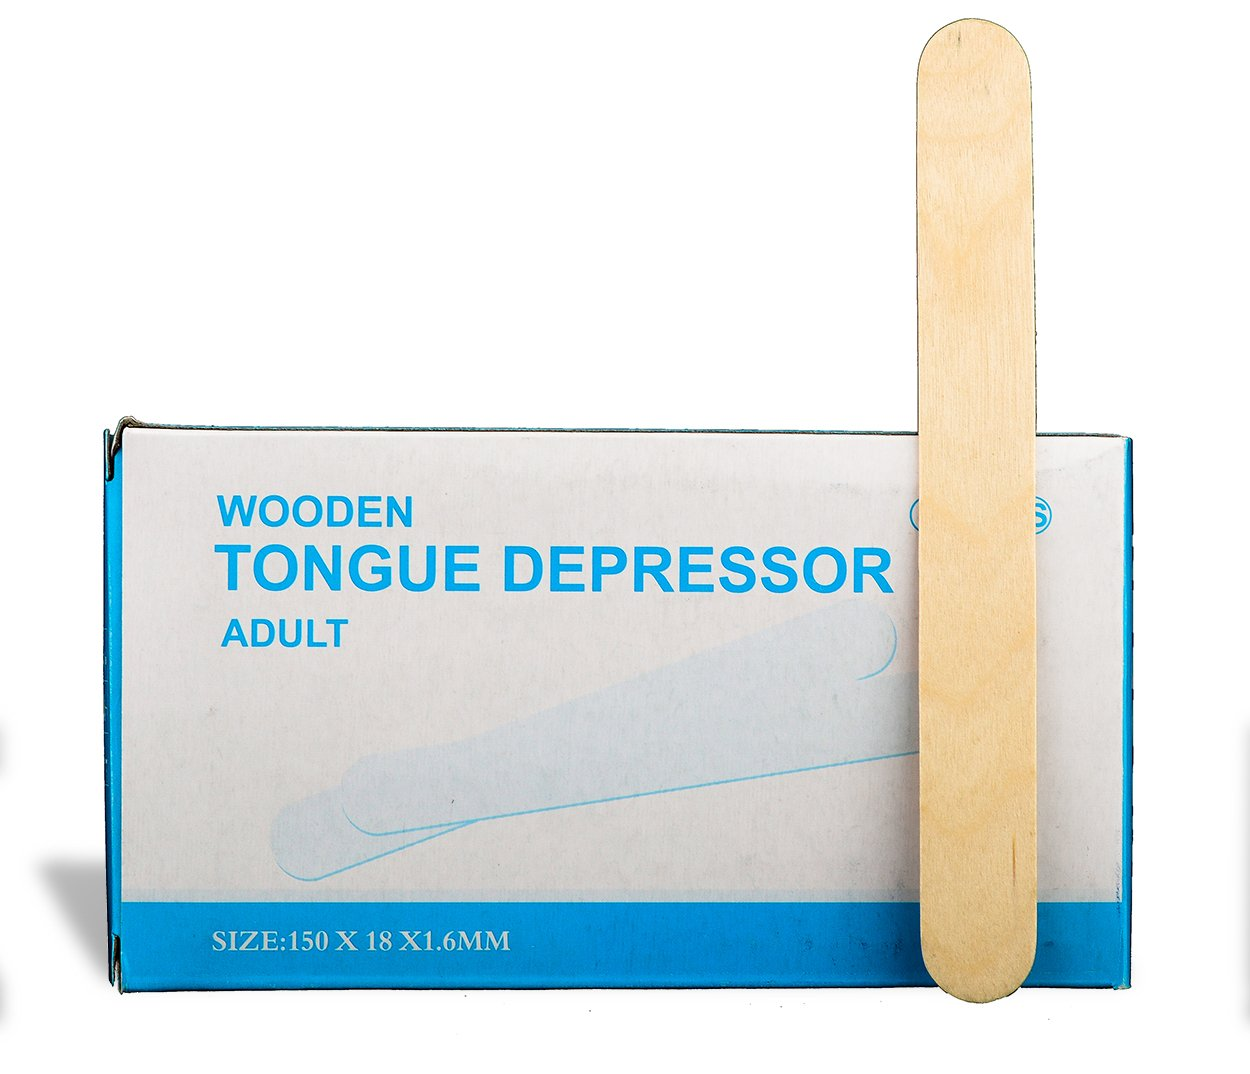 TONGUE DEPRESSOR Chemical FREE _ Non splinter _ Non-Sterile _ 2 CASES=100 boxes=10000pcs _ MADE OF HIGH GRADE BIRCH, WOODEN CRAFT STICKS. Manufactured By P&P Medical Surgical LLC